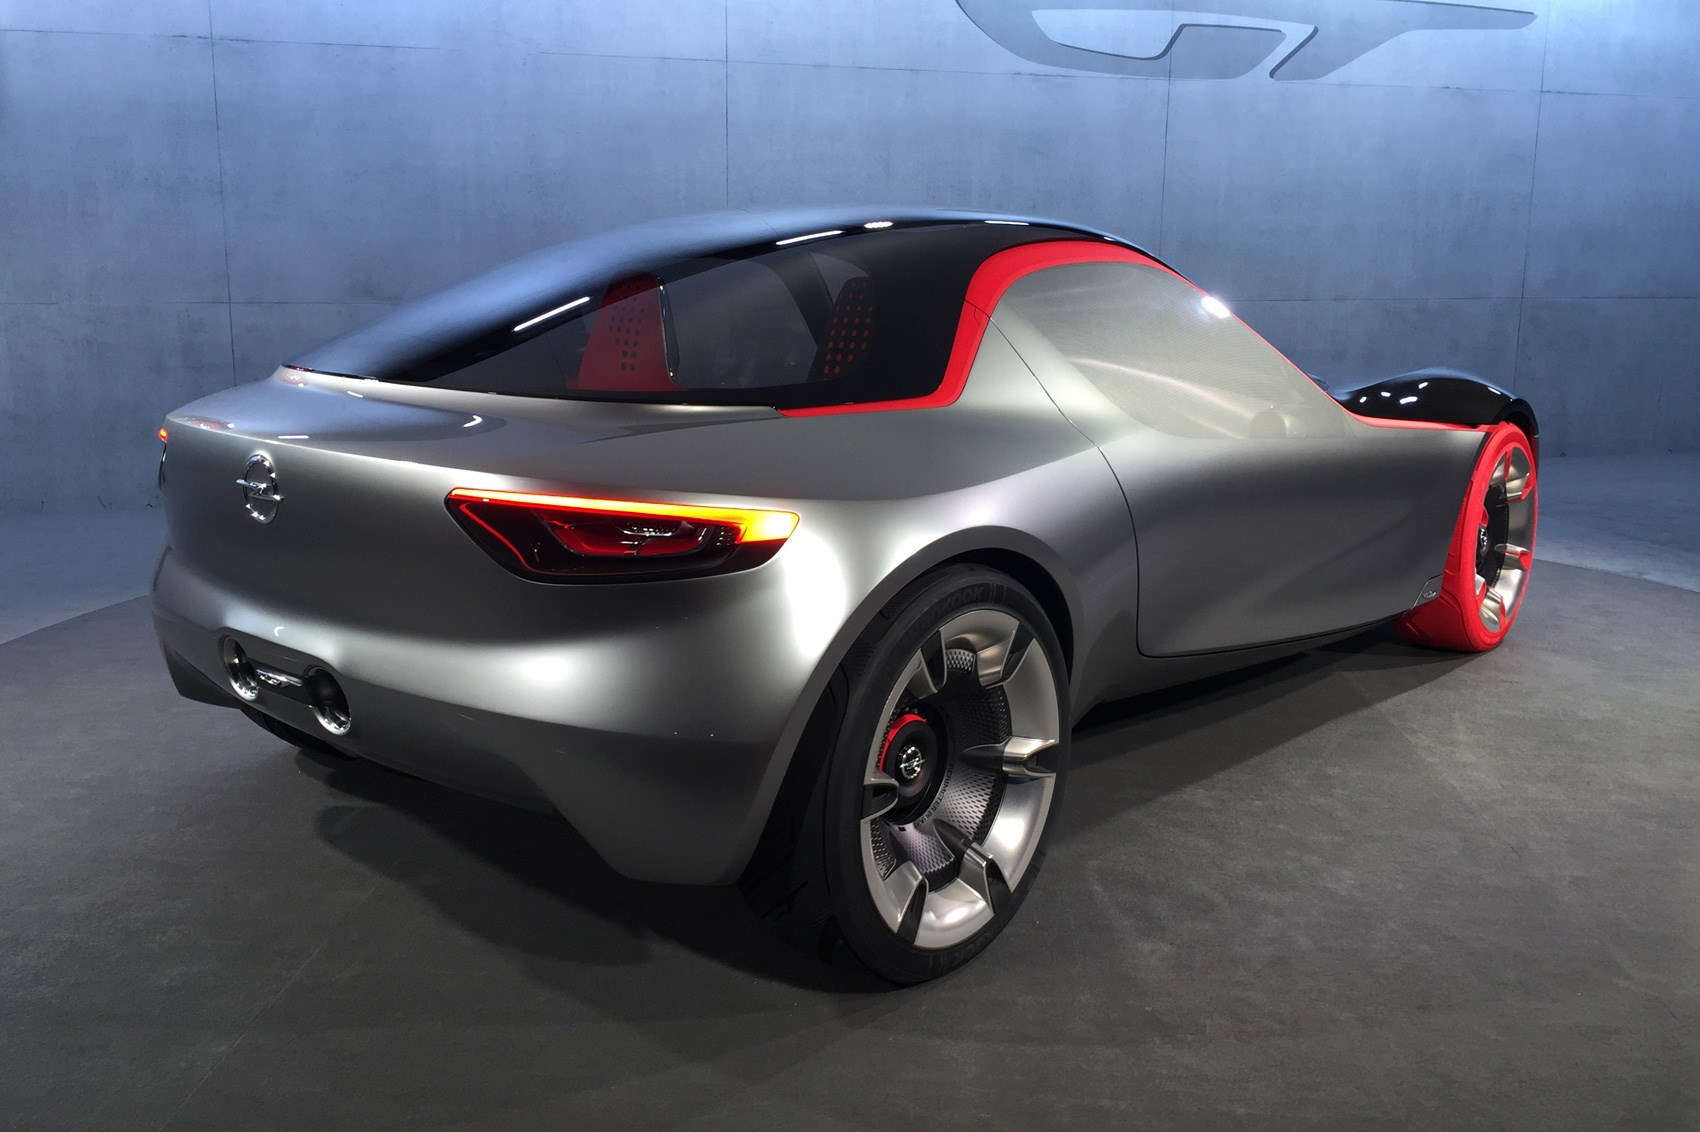 Opel Gt Concept Revealed At Geneva 2016 Vauxhall S Sports Car Surprise By Car Magazine